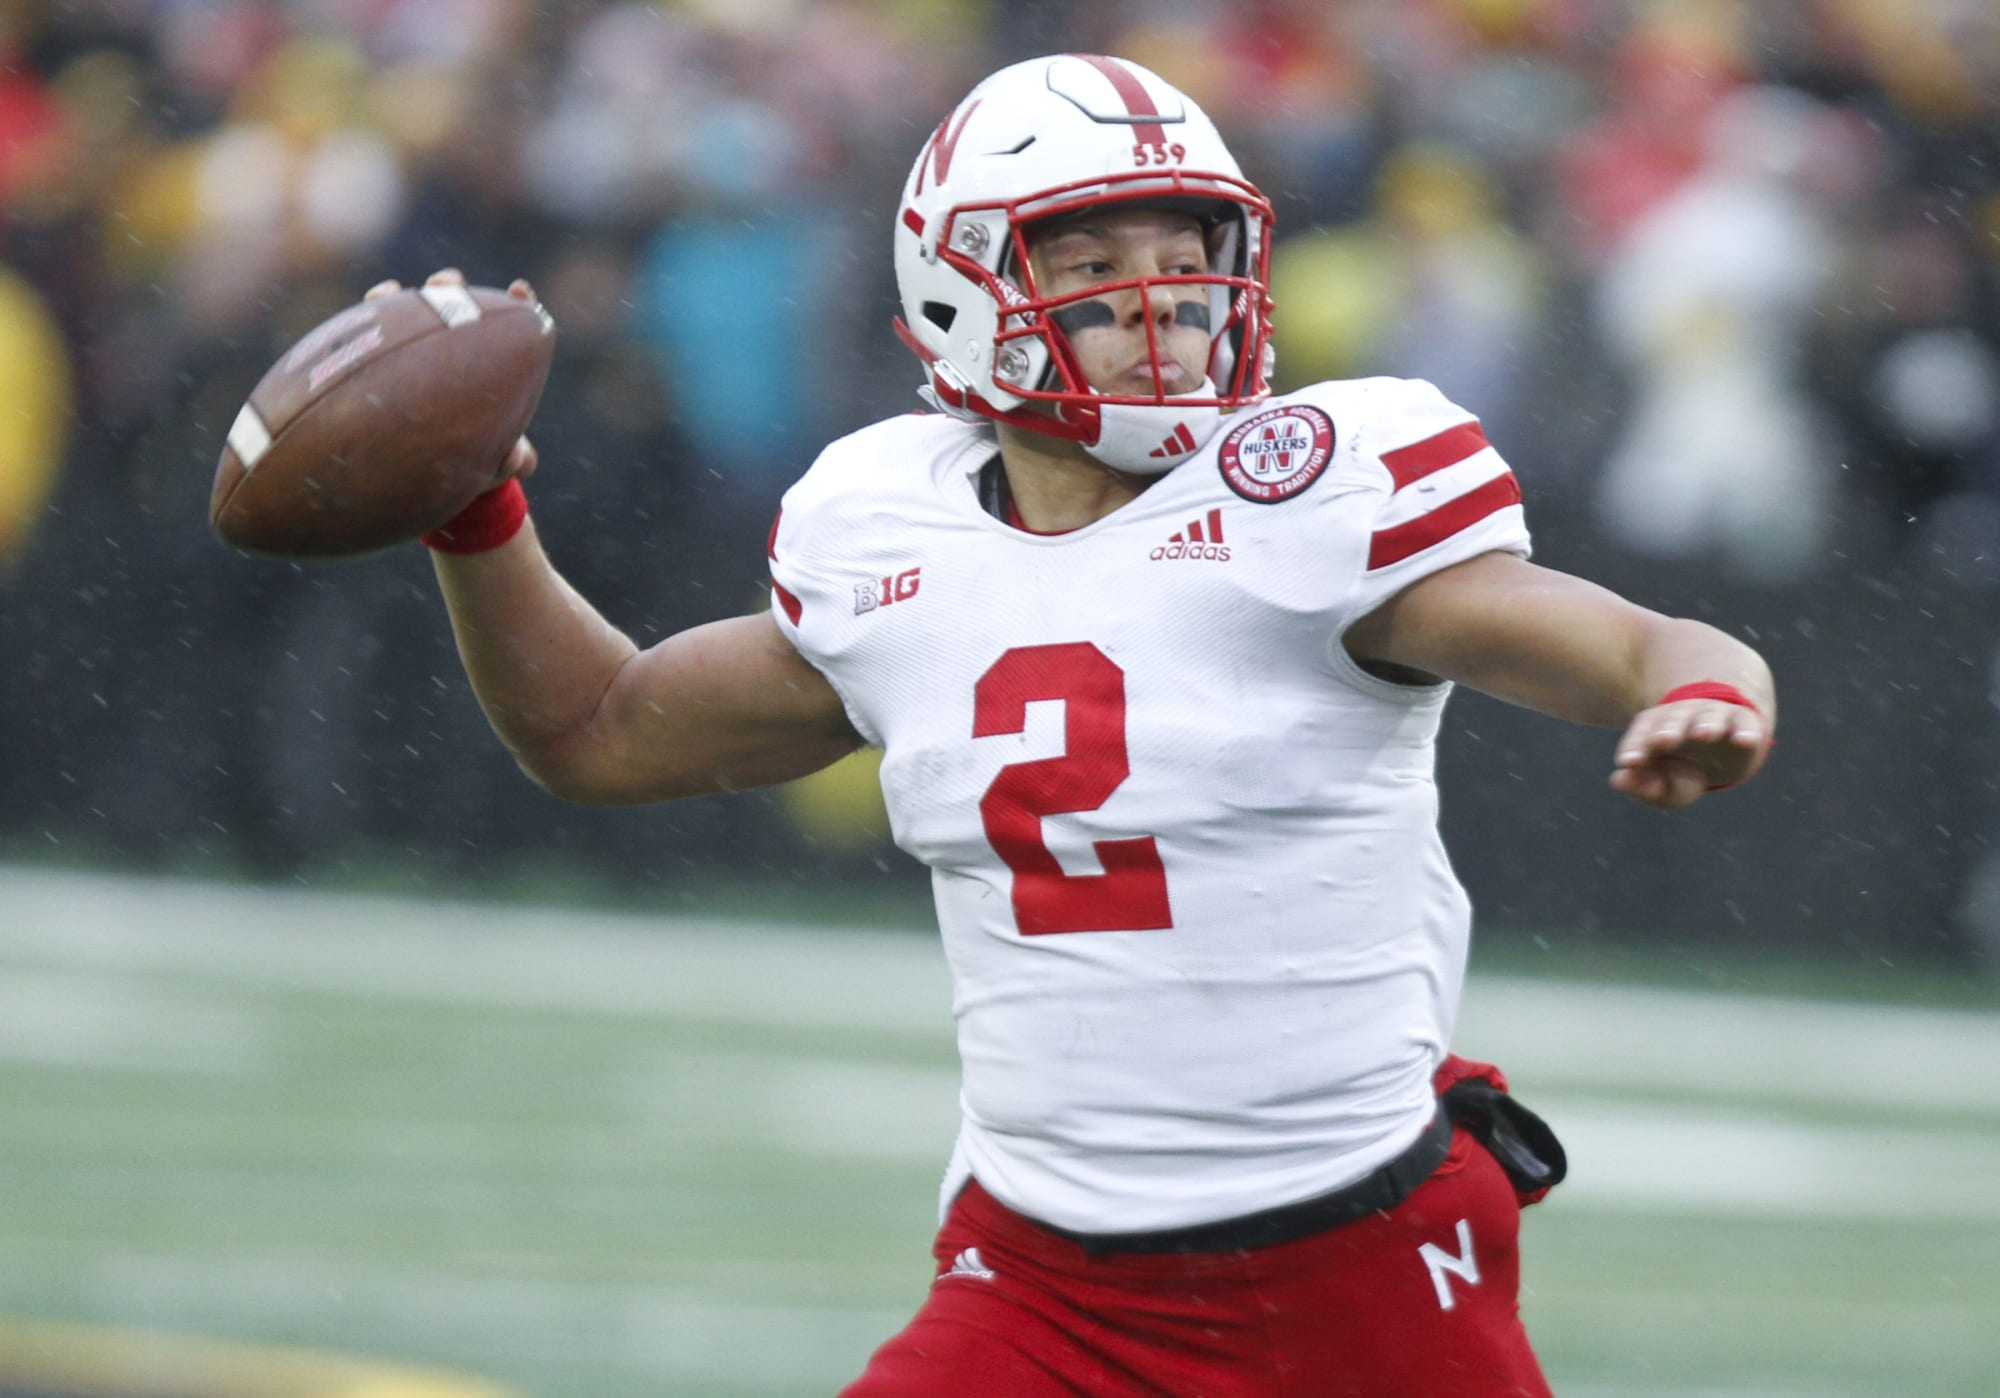 Nebraska Football: Looking ahead to the second week of ...